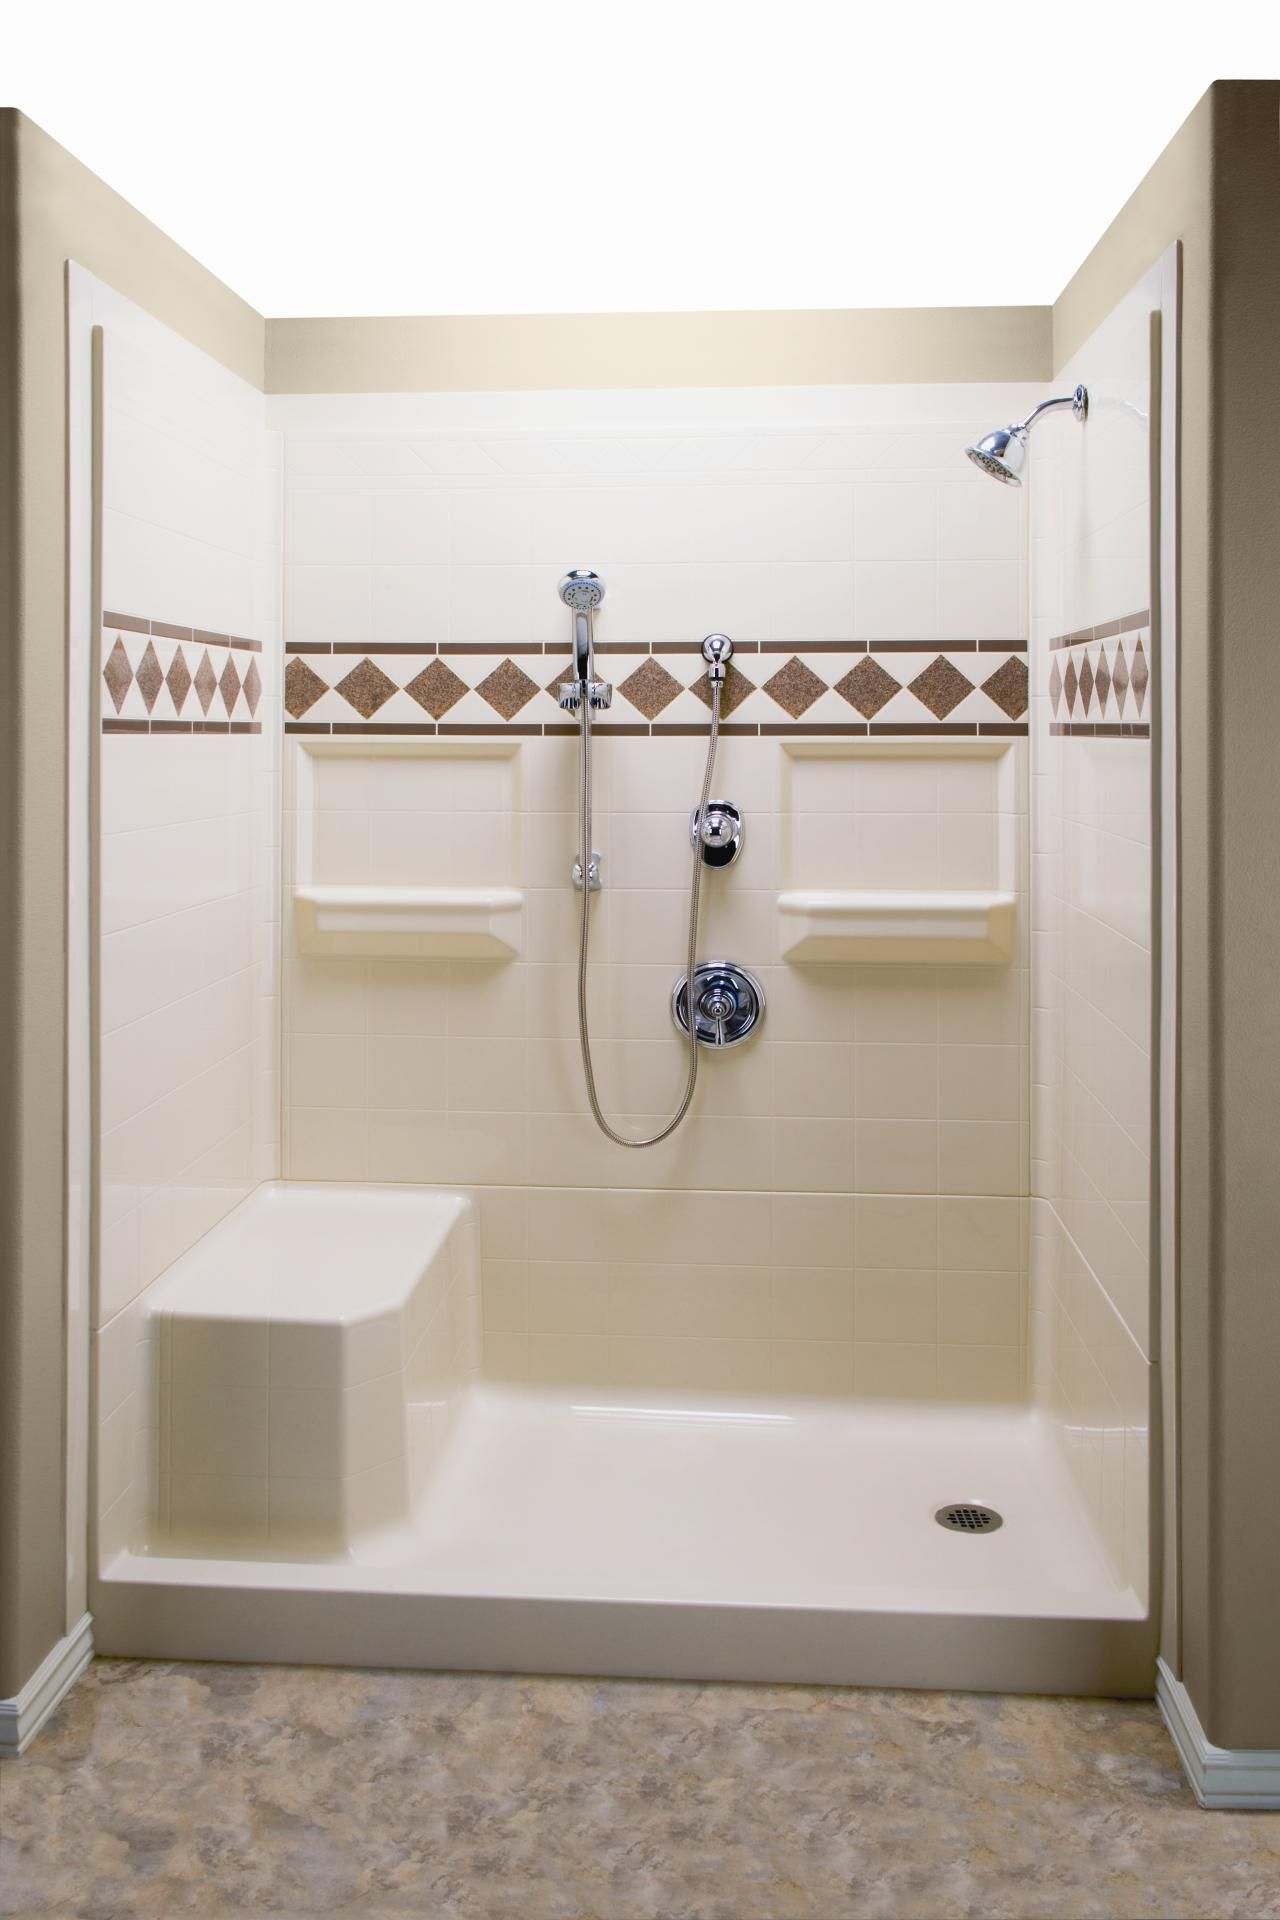 Shower With Built In Bench Google Search Fiberglass Shower